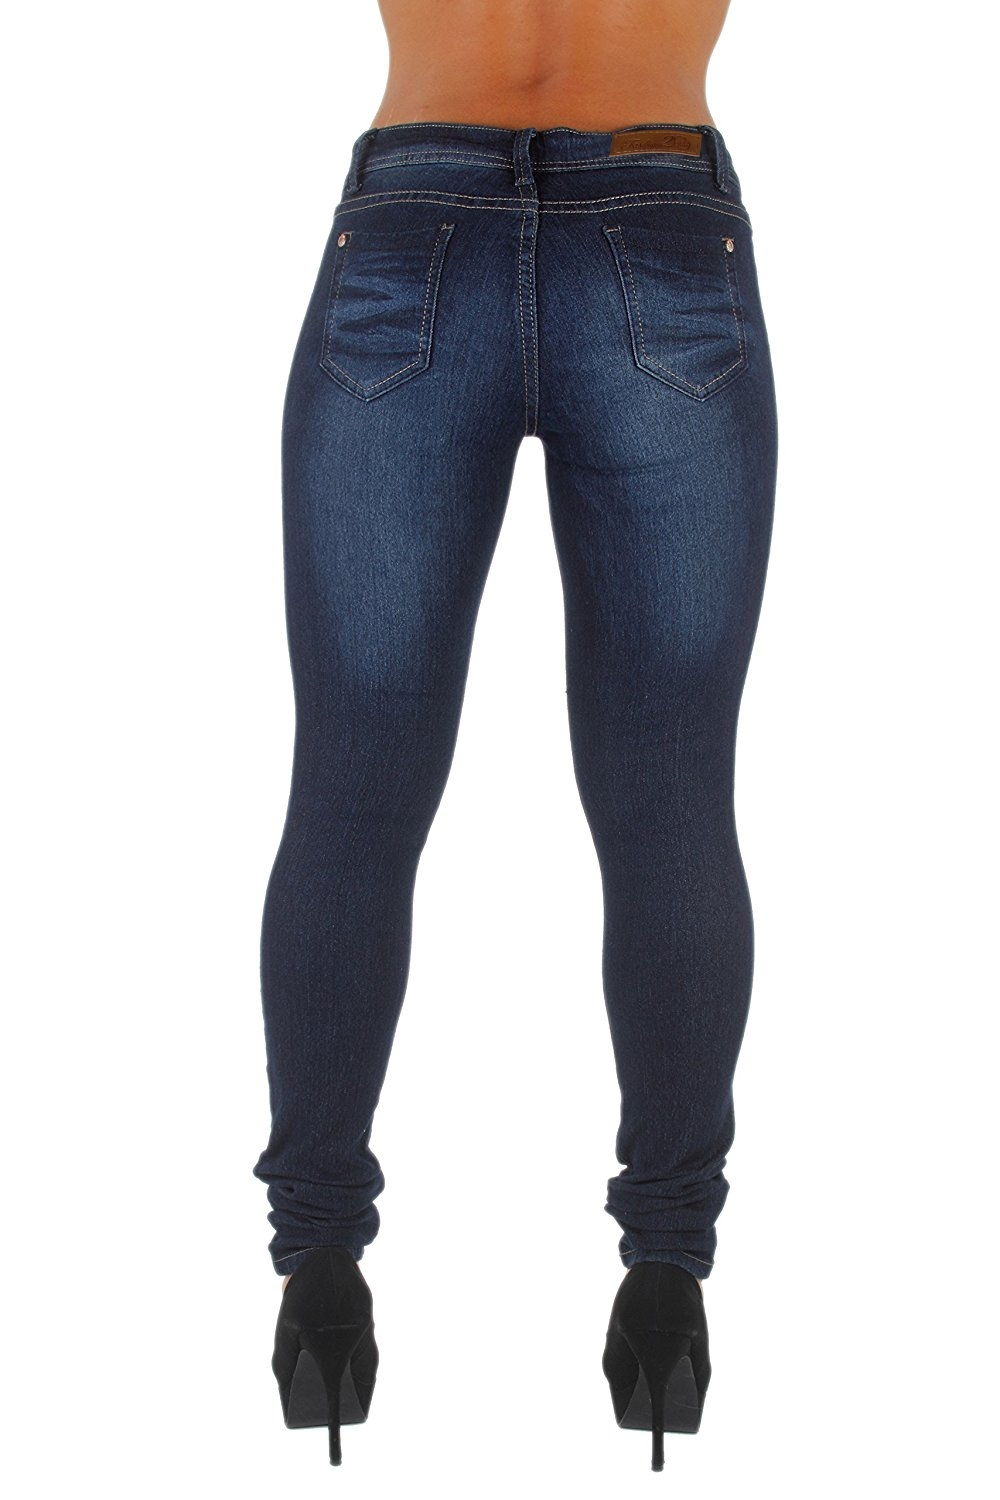 Plus-Size-Classic-5-Pockets-Washed-Skinny-Jeans thumbnail 10